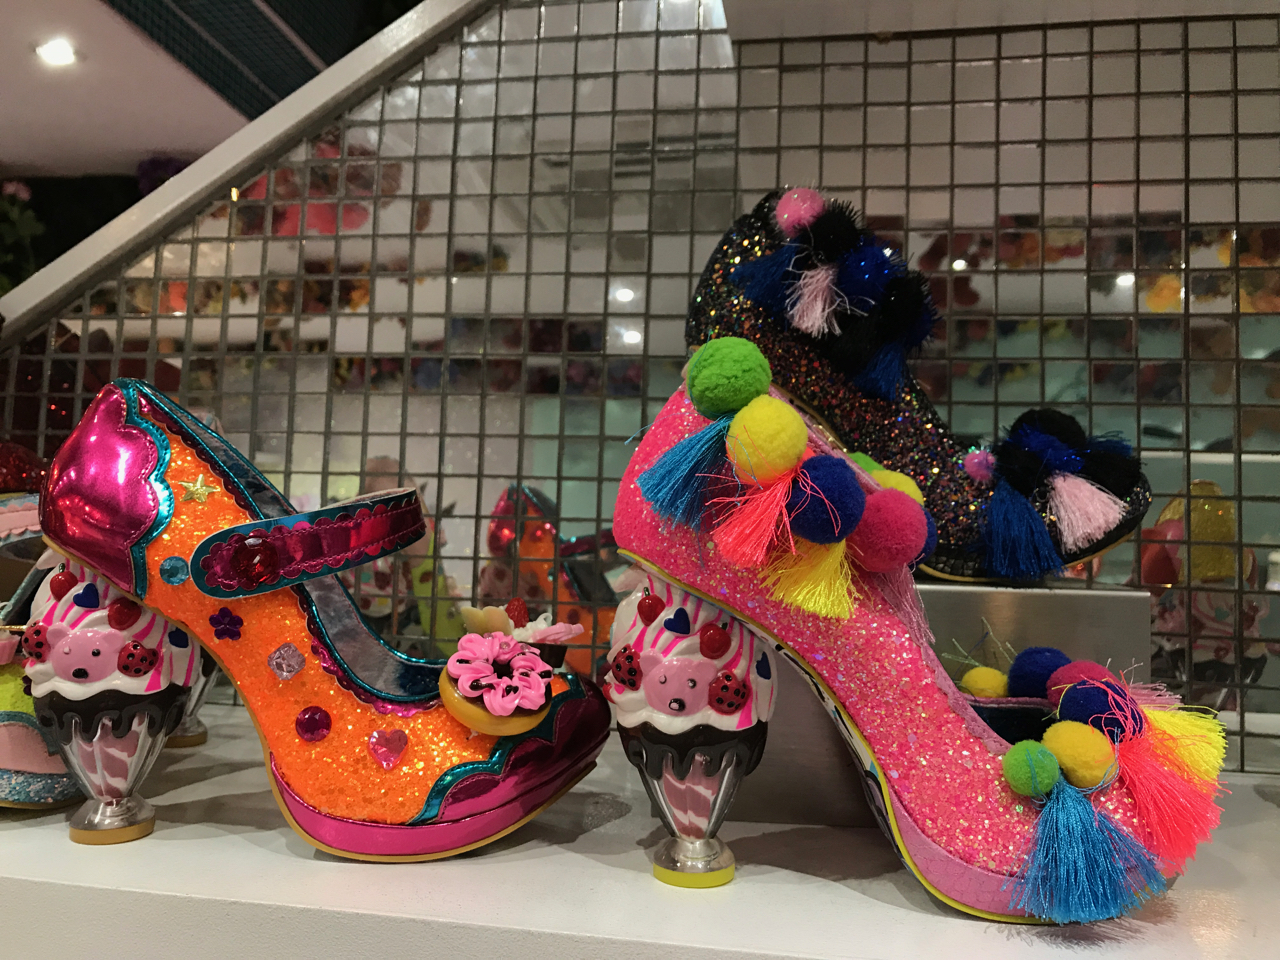 A photo of the arctic roll shoes from Irregular Choice in London, England. The shoes in this crazy high heel store feature glitter, ice cream sundaes as the heels, pompoms and tassels as well as donuts.